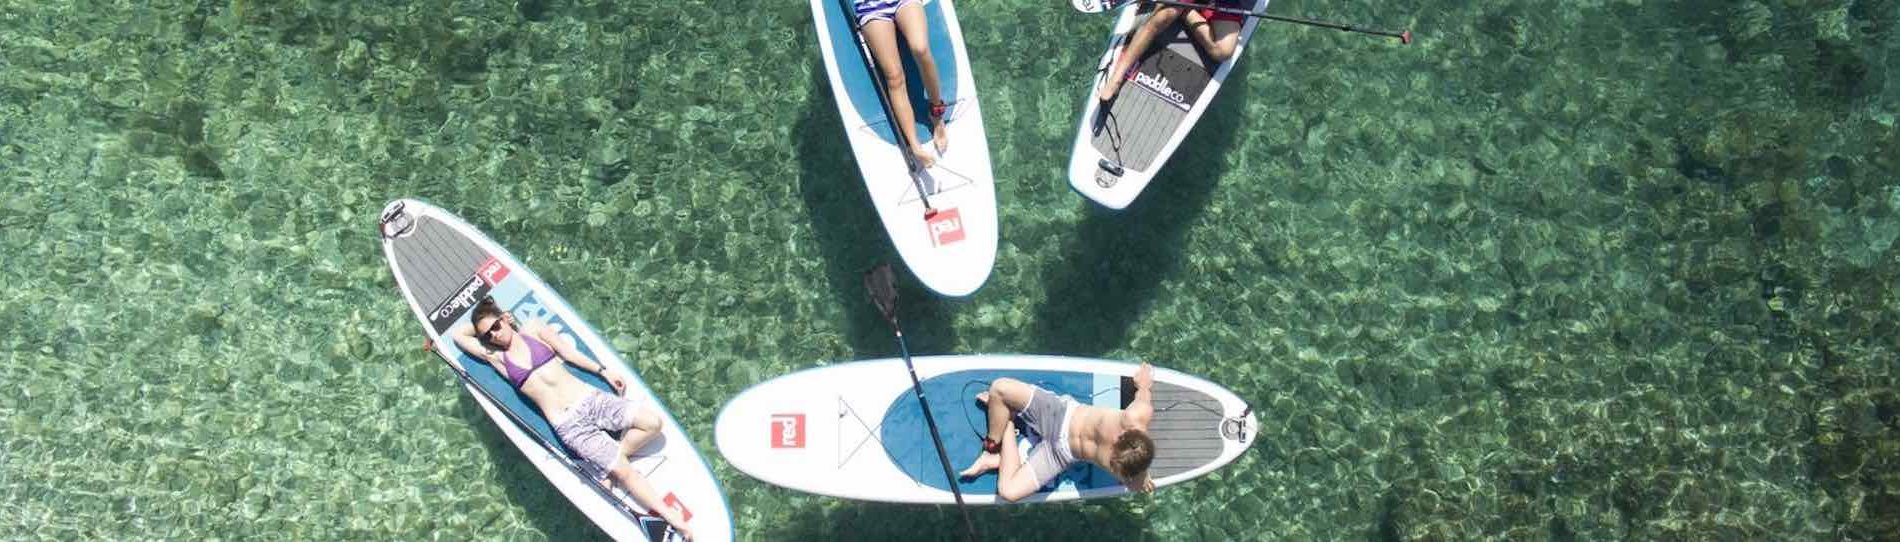 group of bucks stand up paddle boarding